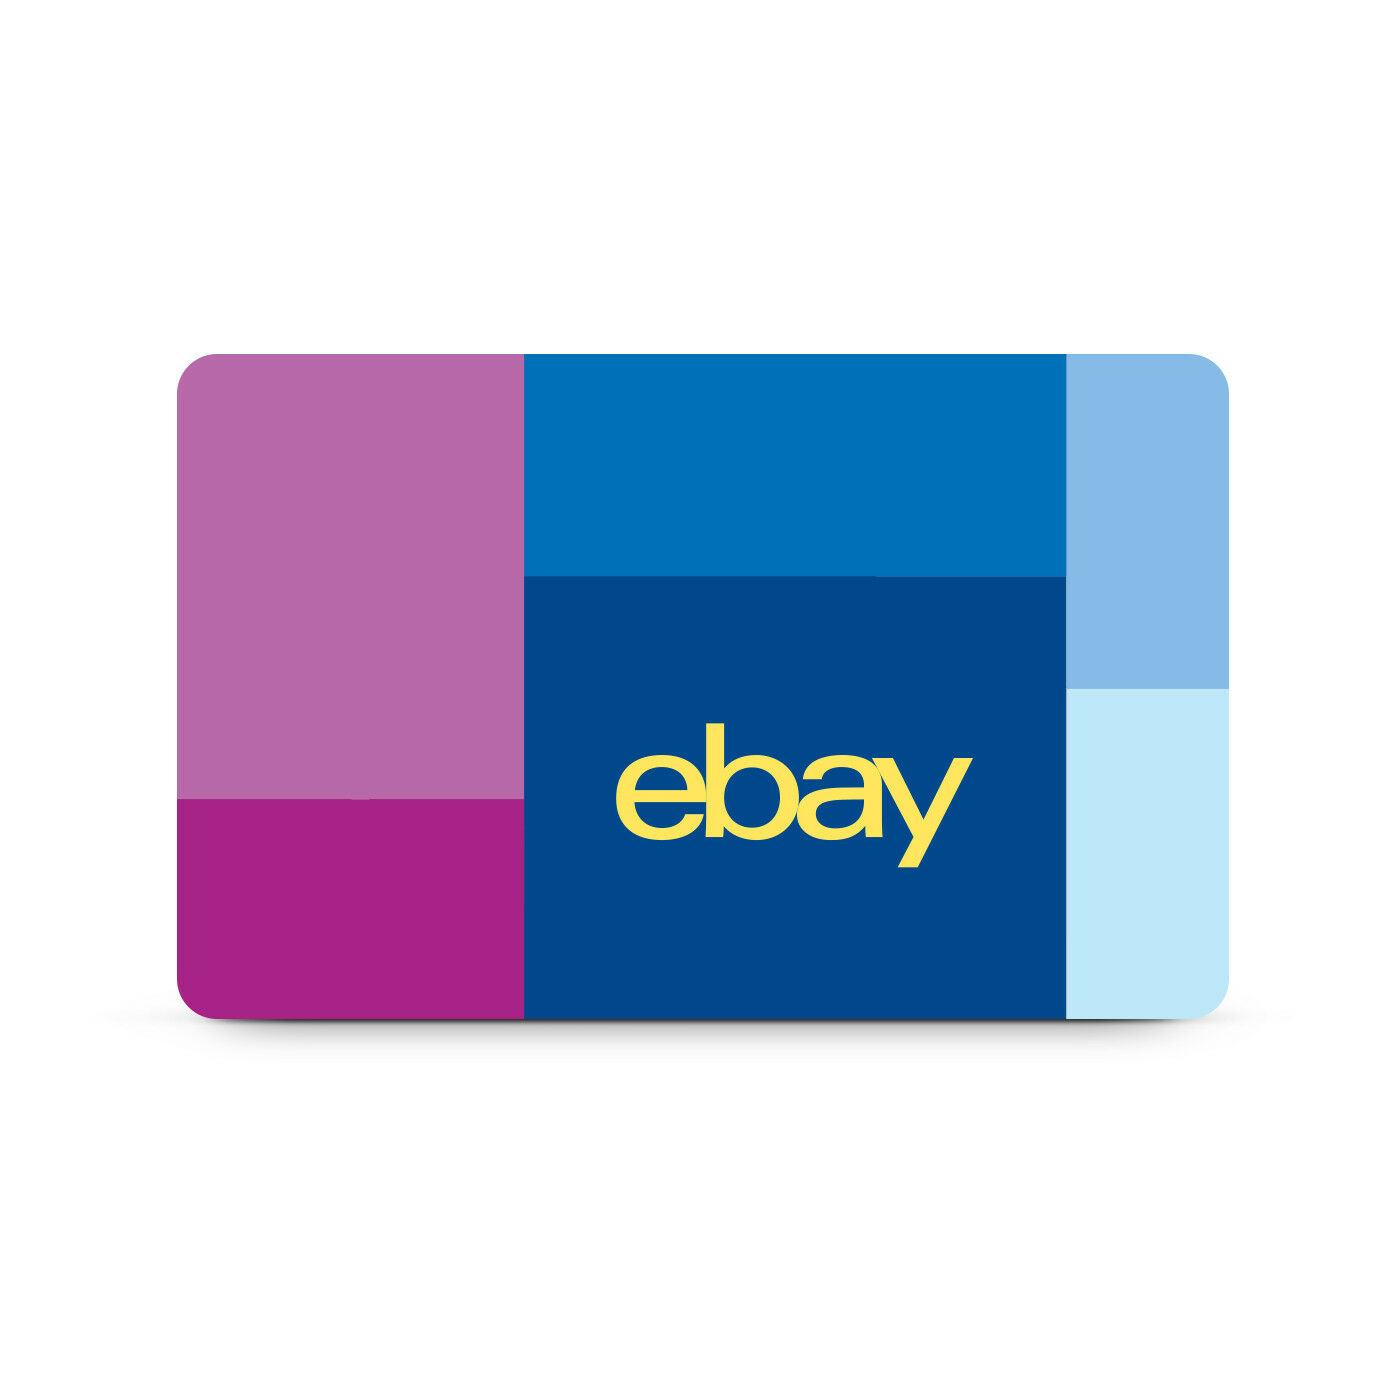 About eBay Coupon Codes. eBay is an icon of the 21st century. It's a global online marketplace that connects buyers, sellers and collectors selling millions of items at any one time.